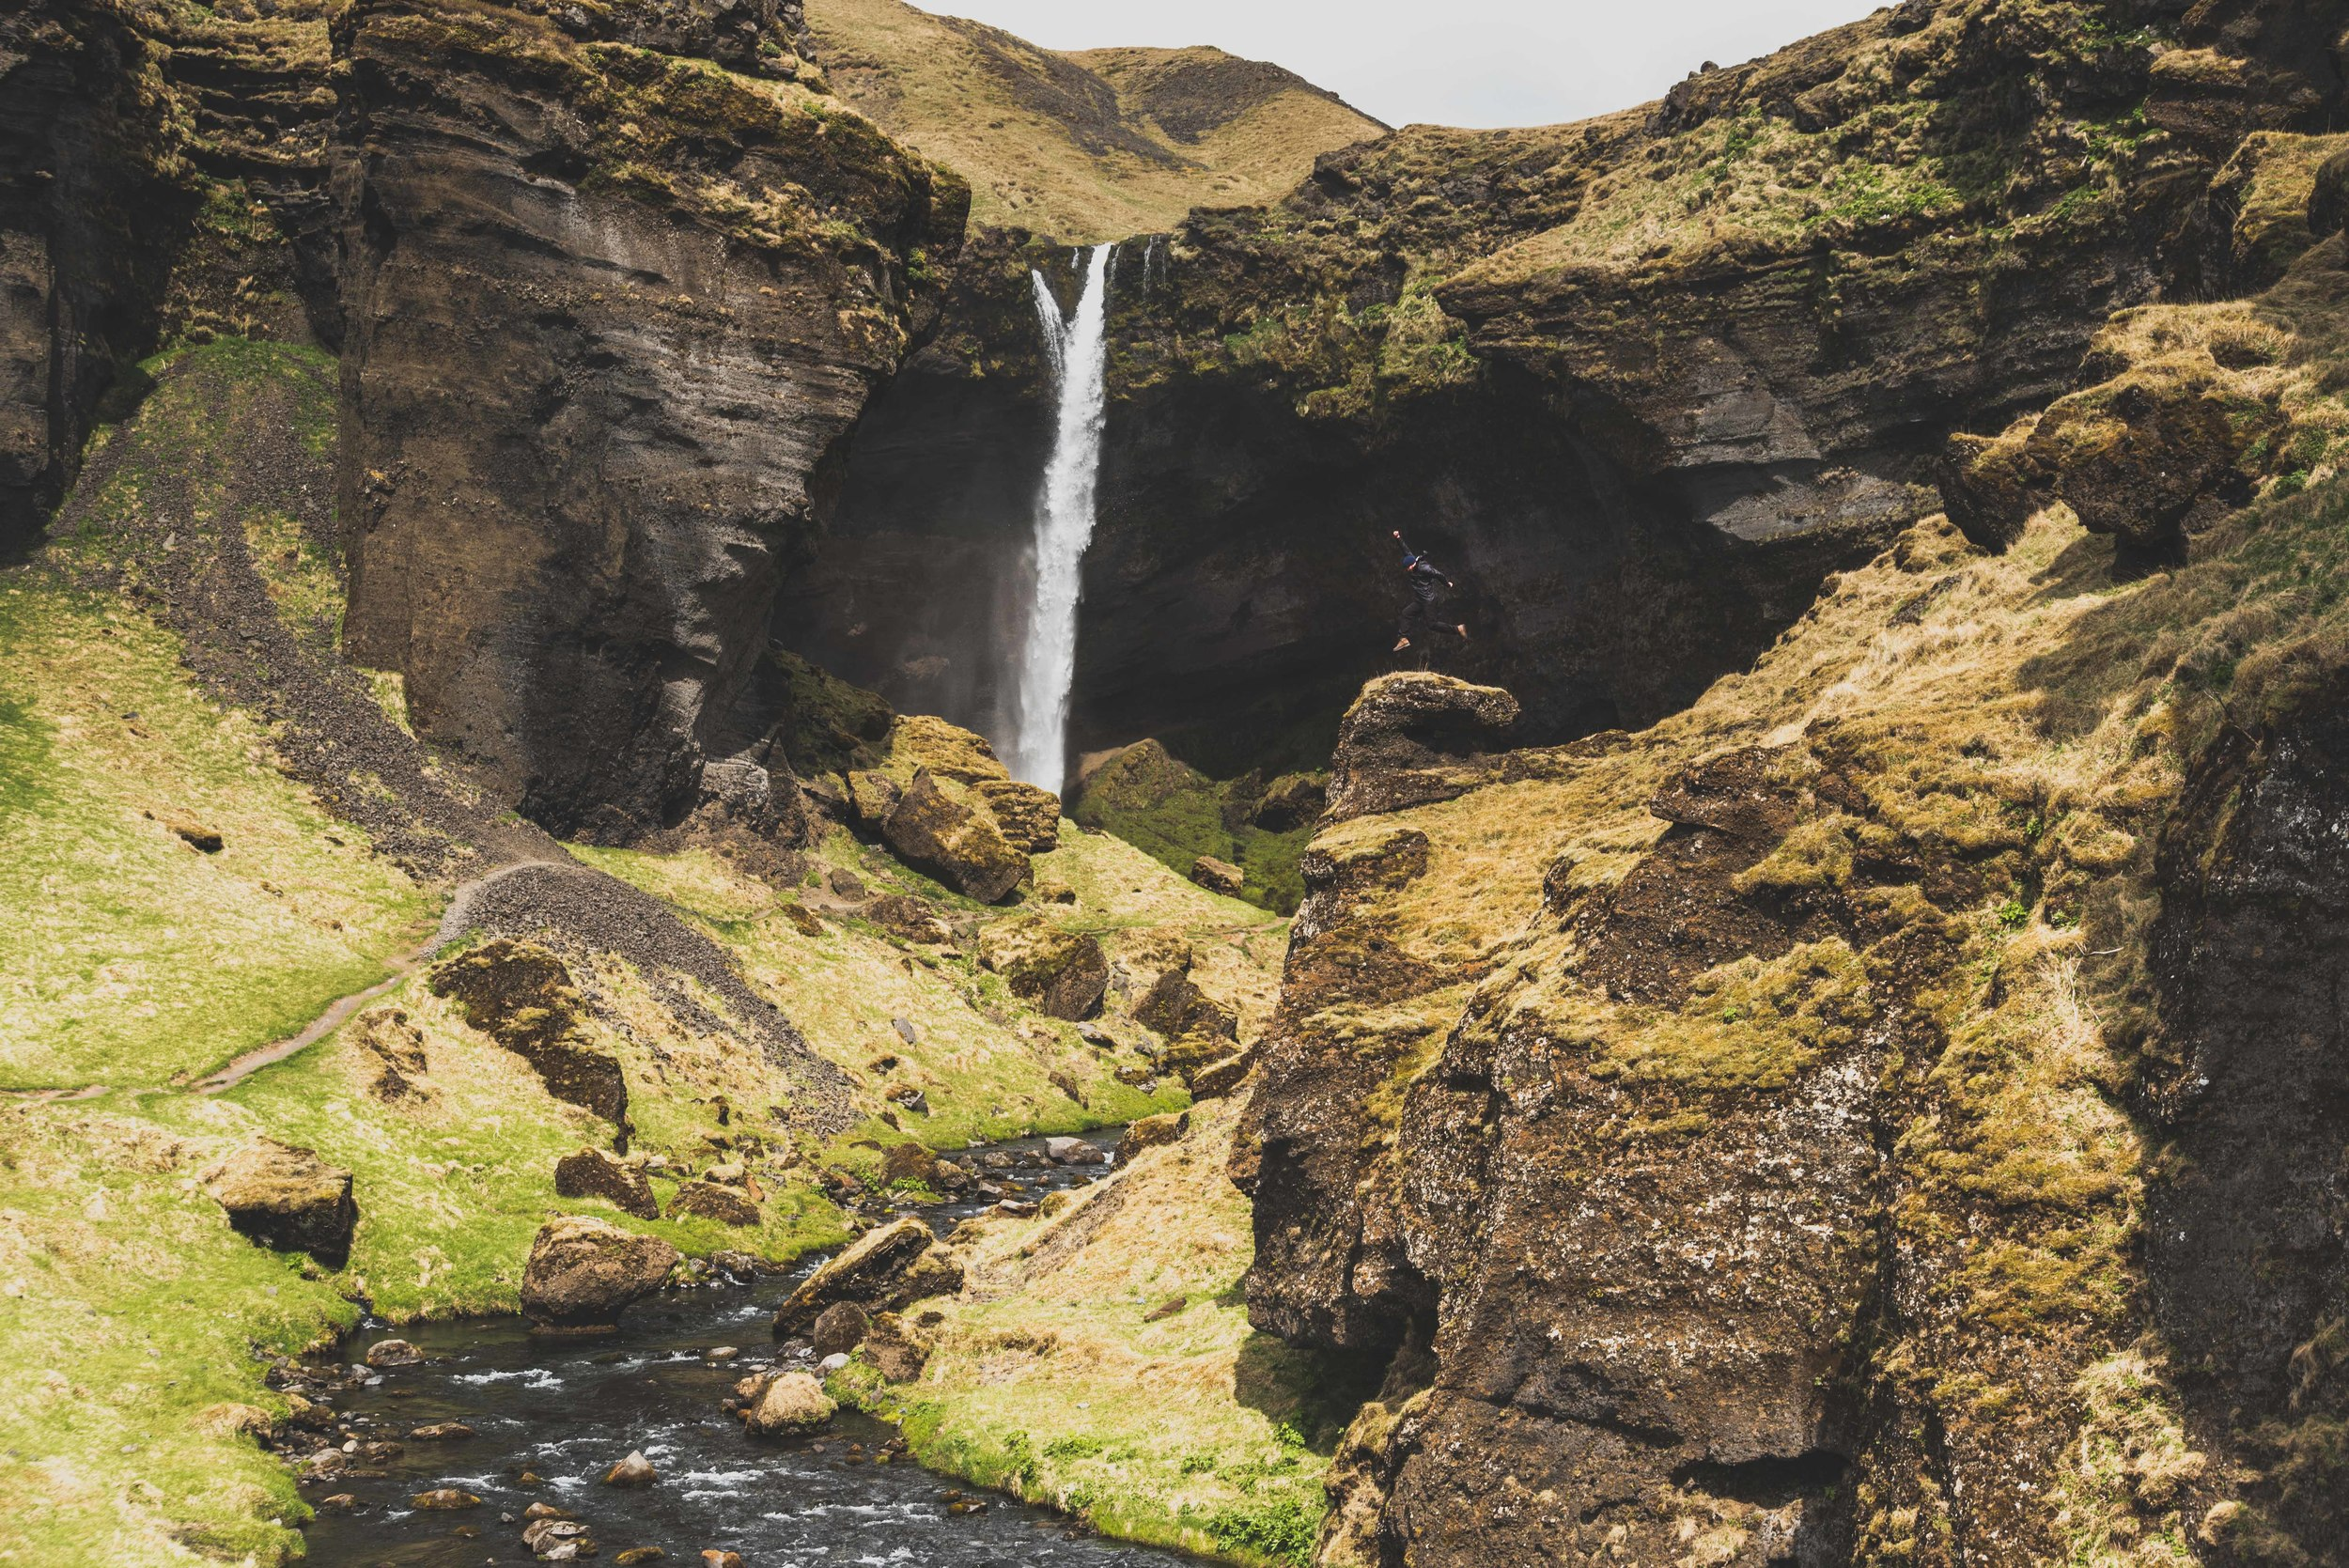 Joe Shutter Bloggar Photographer Iceland Waterfall Photoshoot-13.jpg